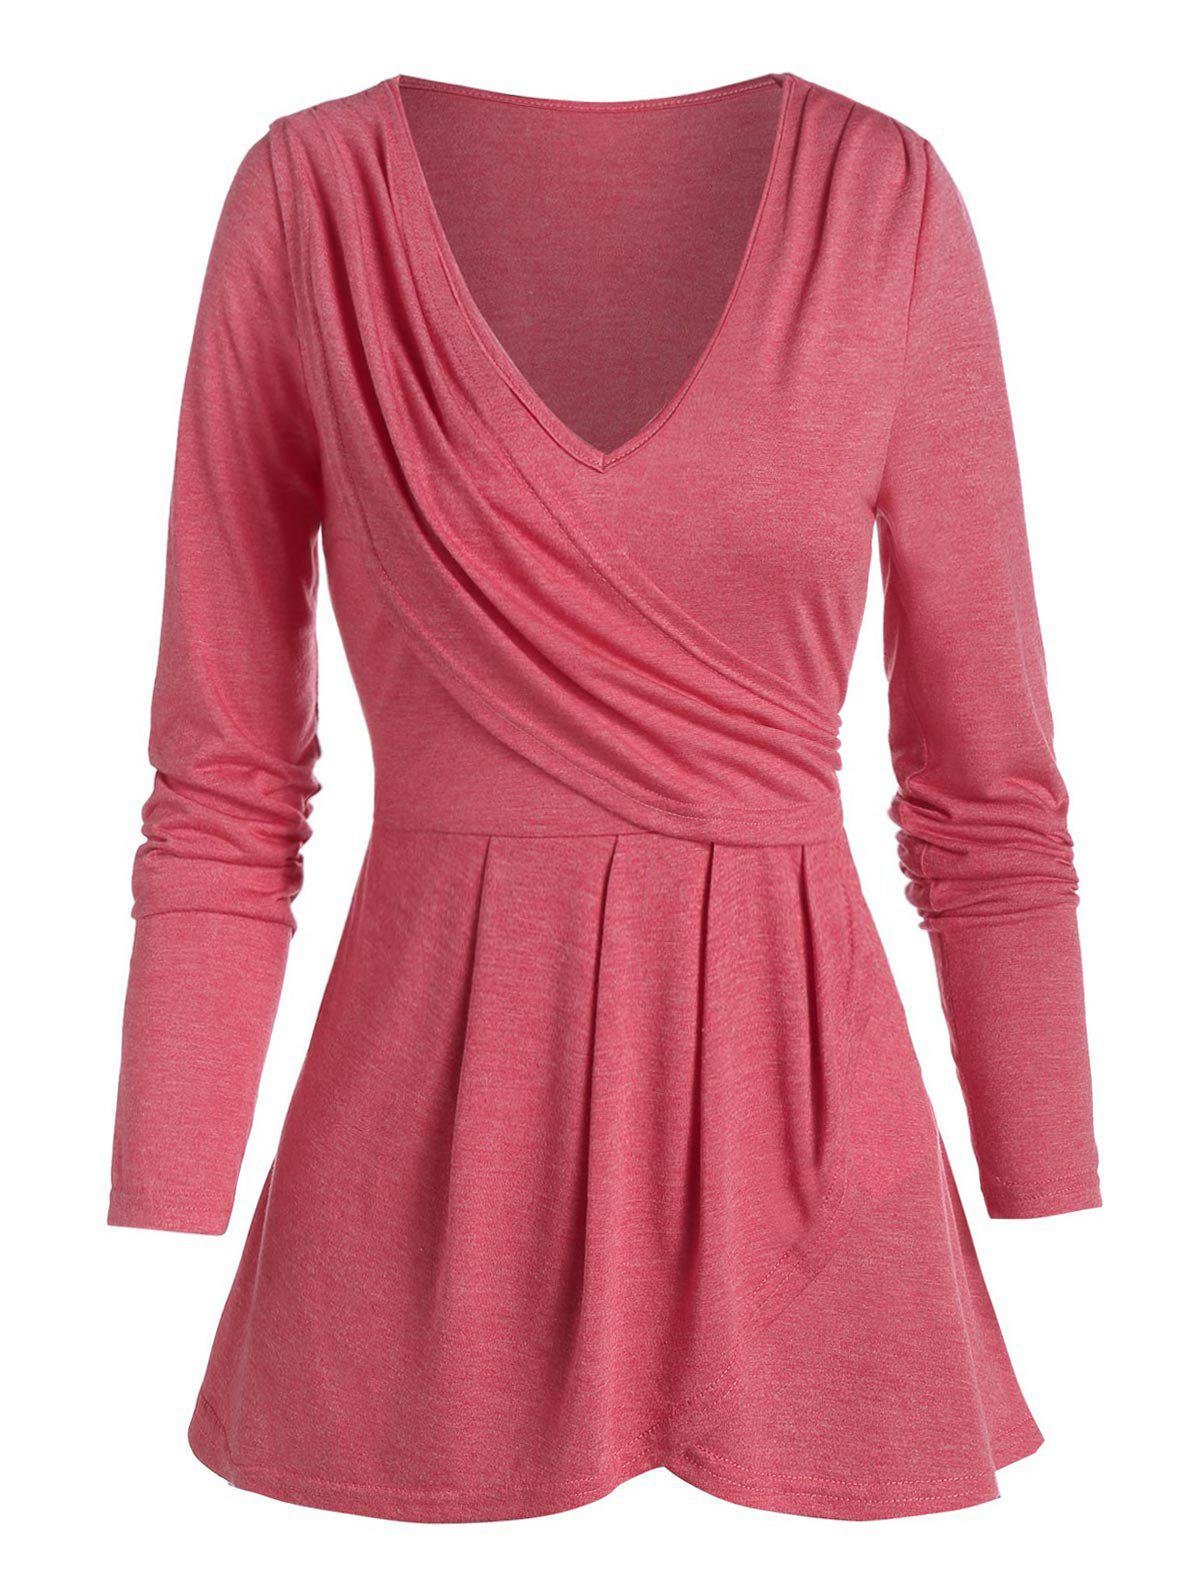 Heathered Plunge Neck Ruched Surplice T-shirt - CHERRY RED 2XL